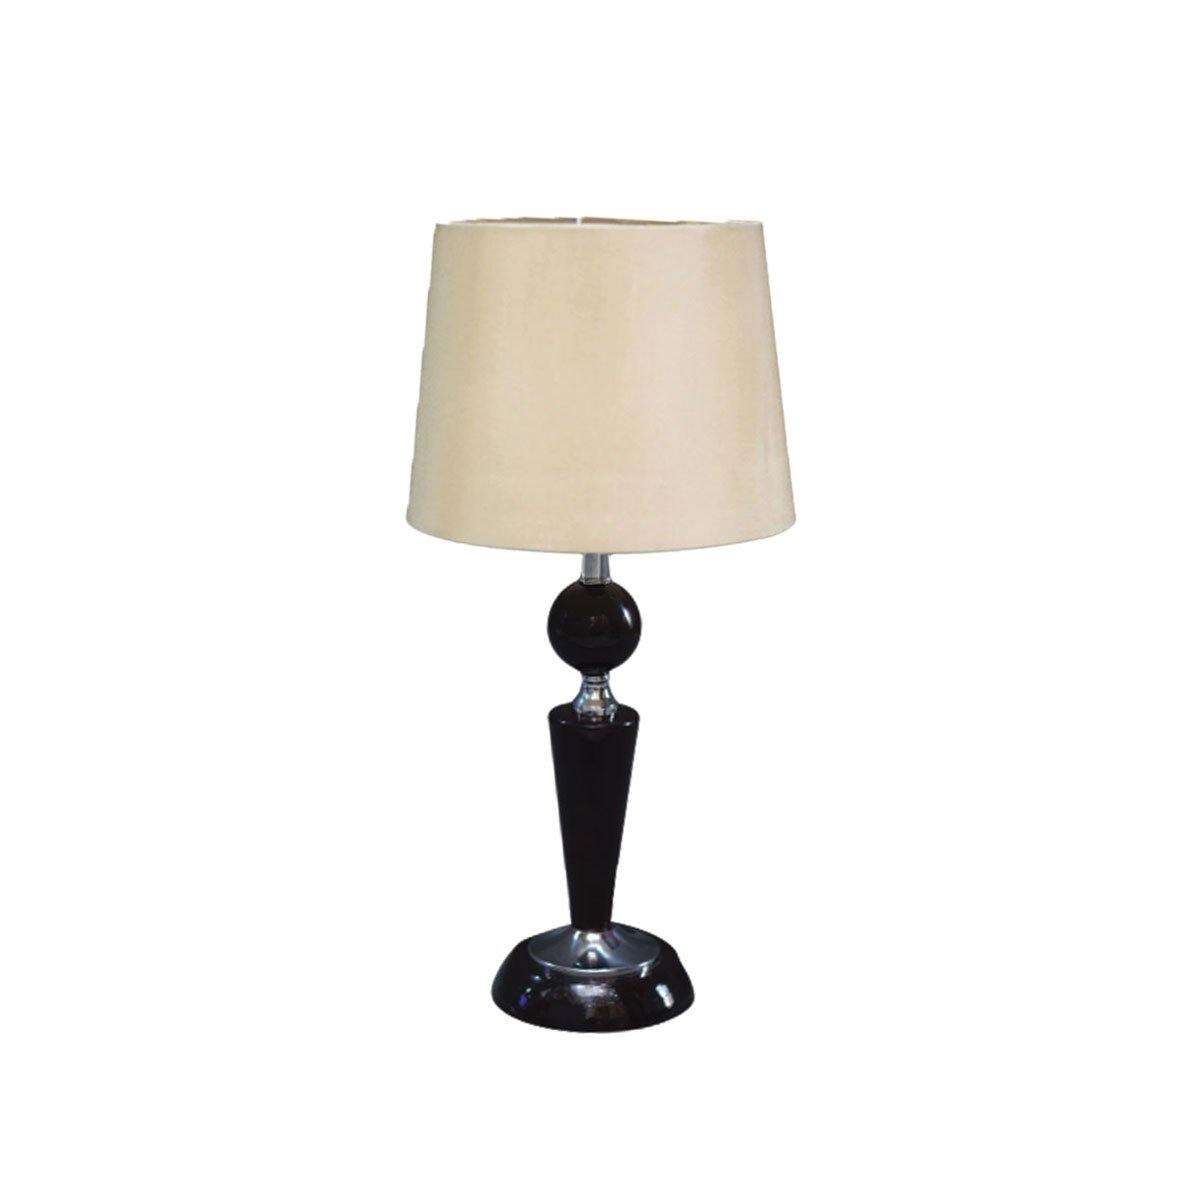 One Ball table lamp